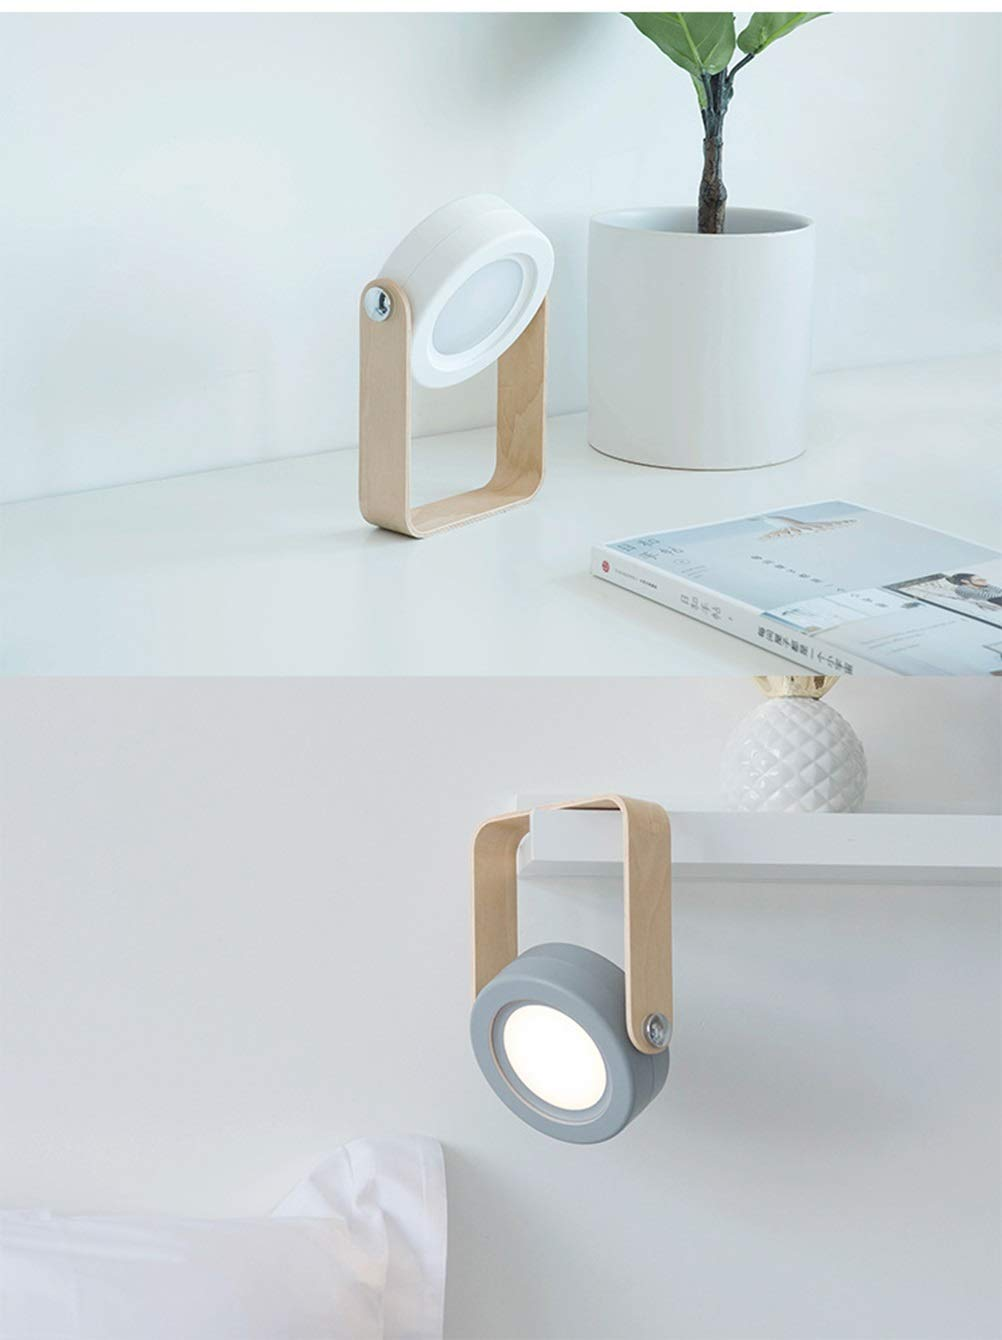 Amazon.com: PPWAN Table Lamp Creative Night Light Plug-in ...